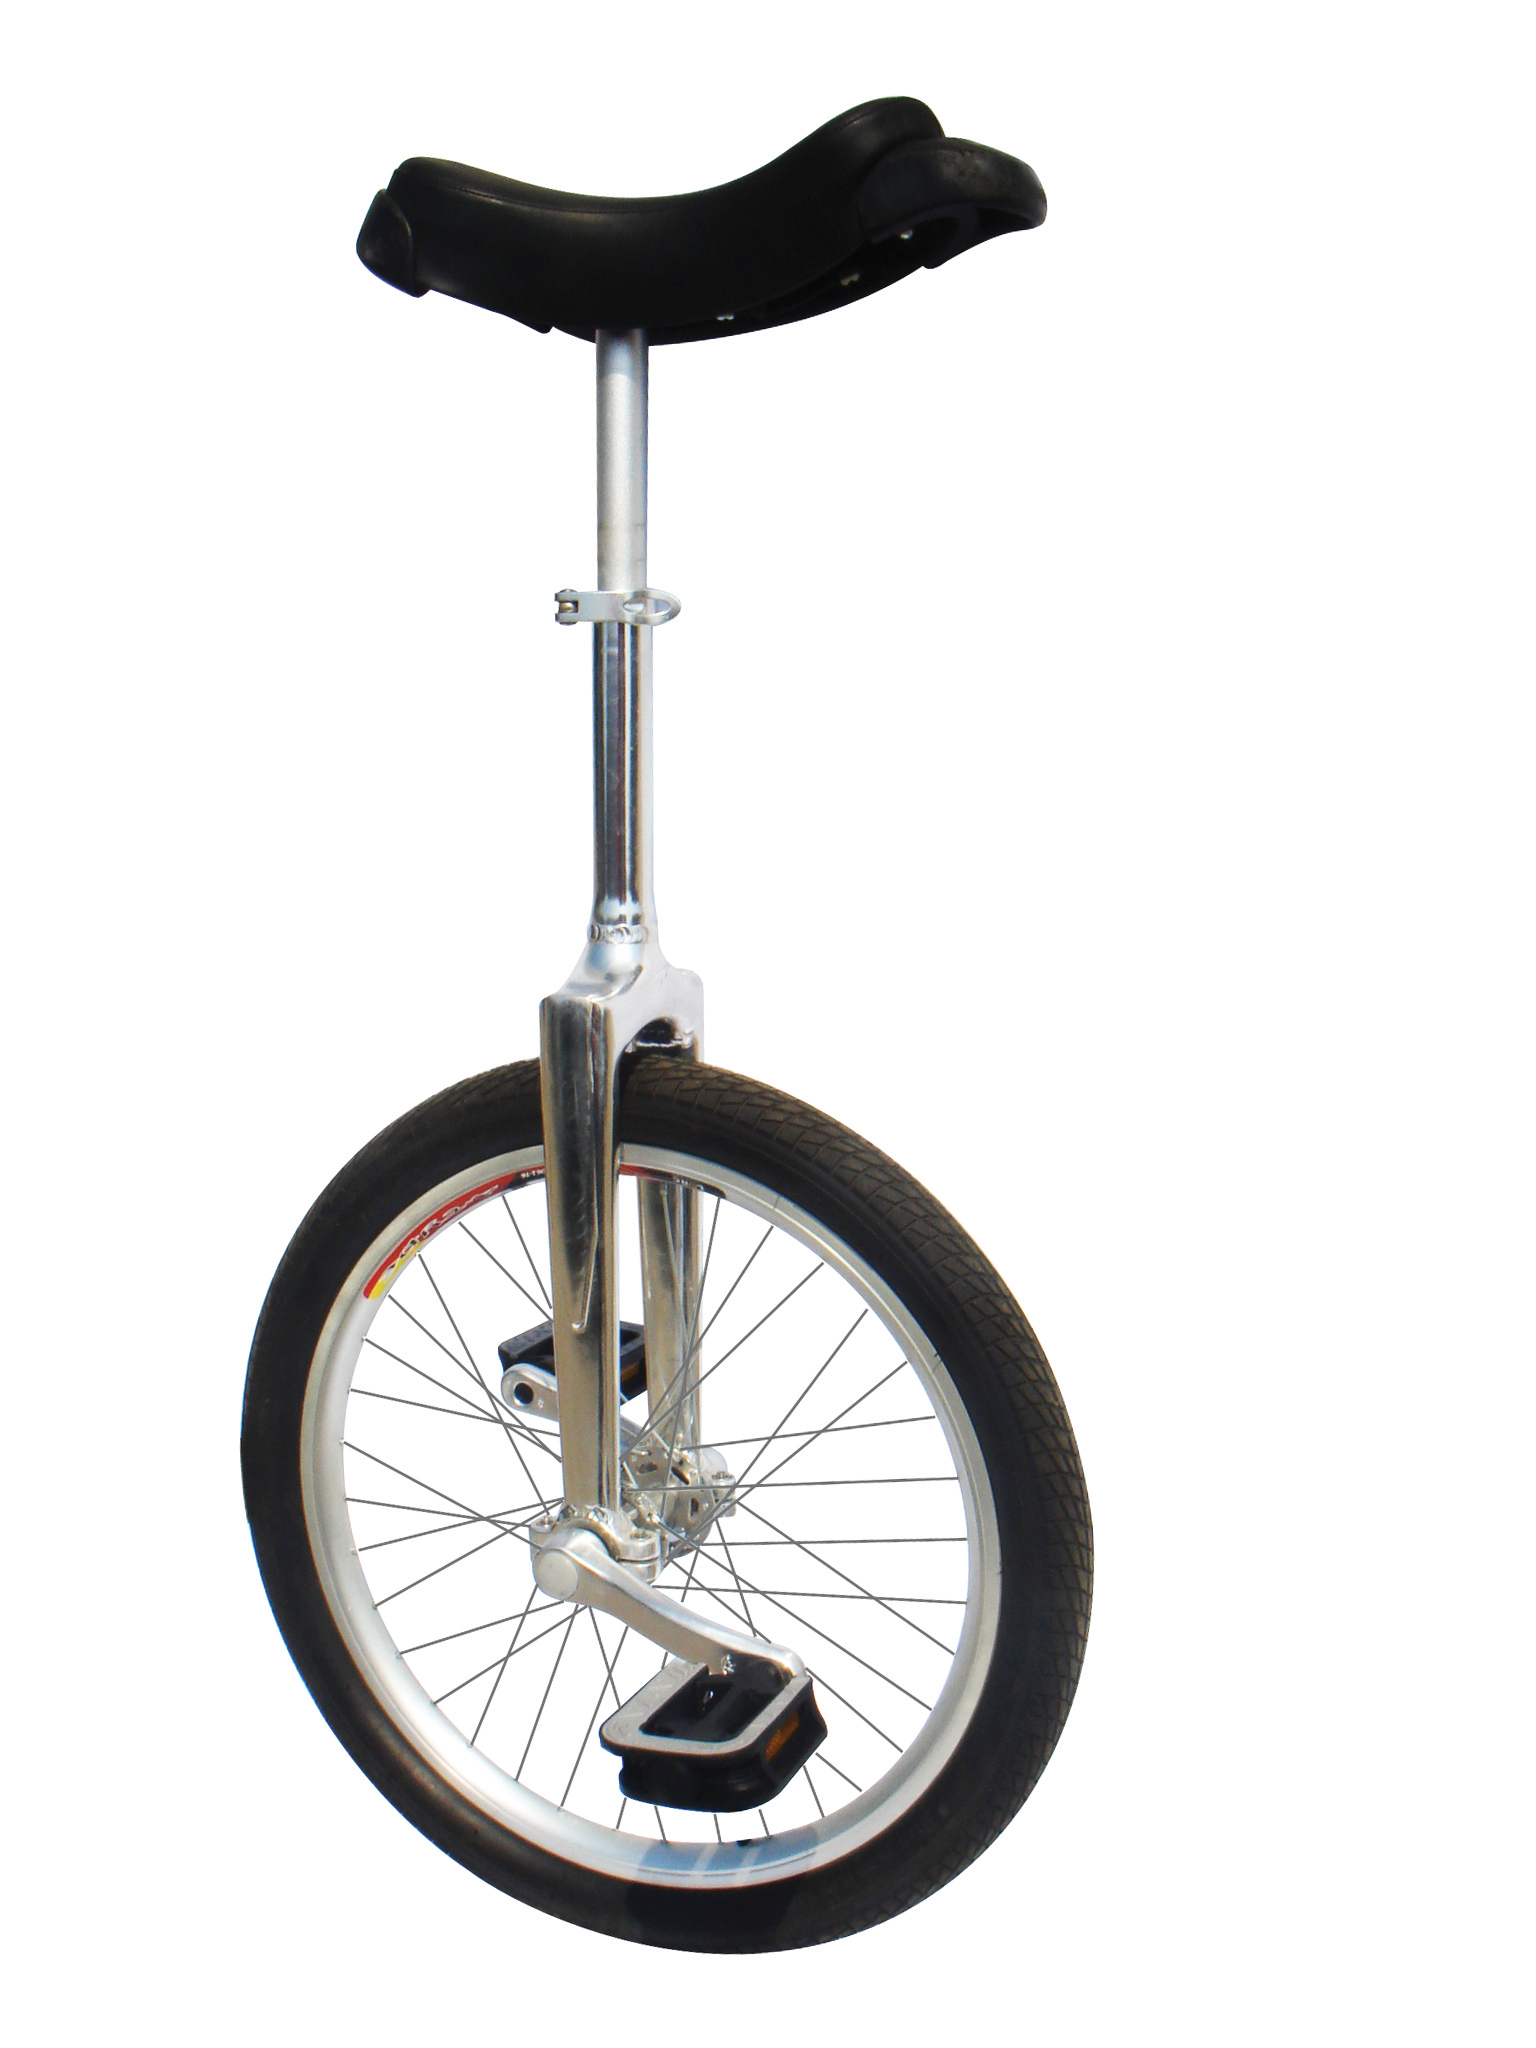 Unicycle Pictures - General Bike Discussion